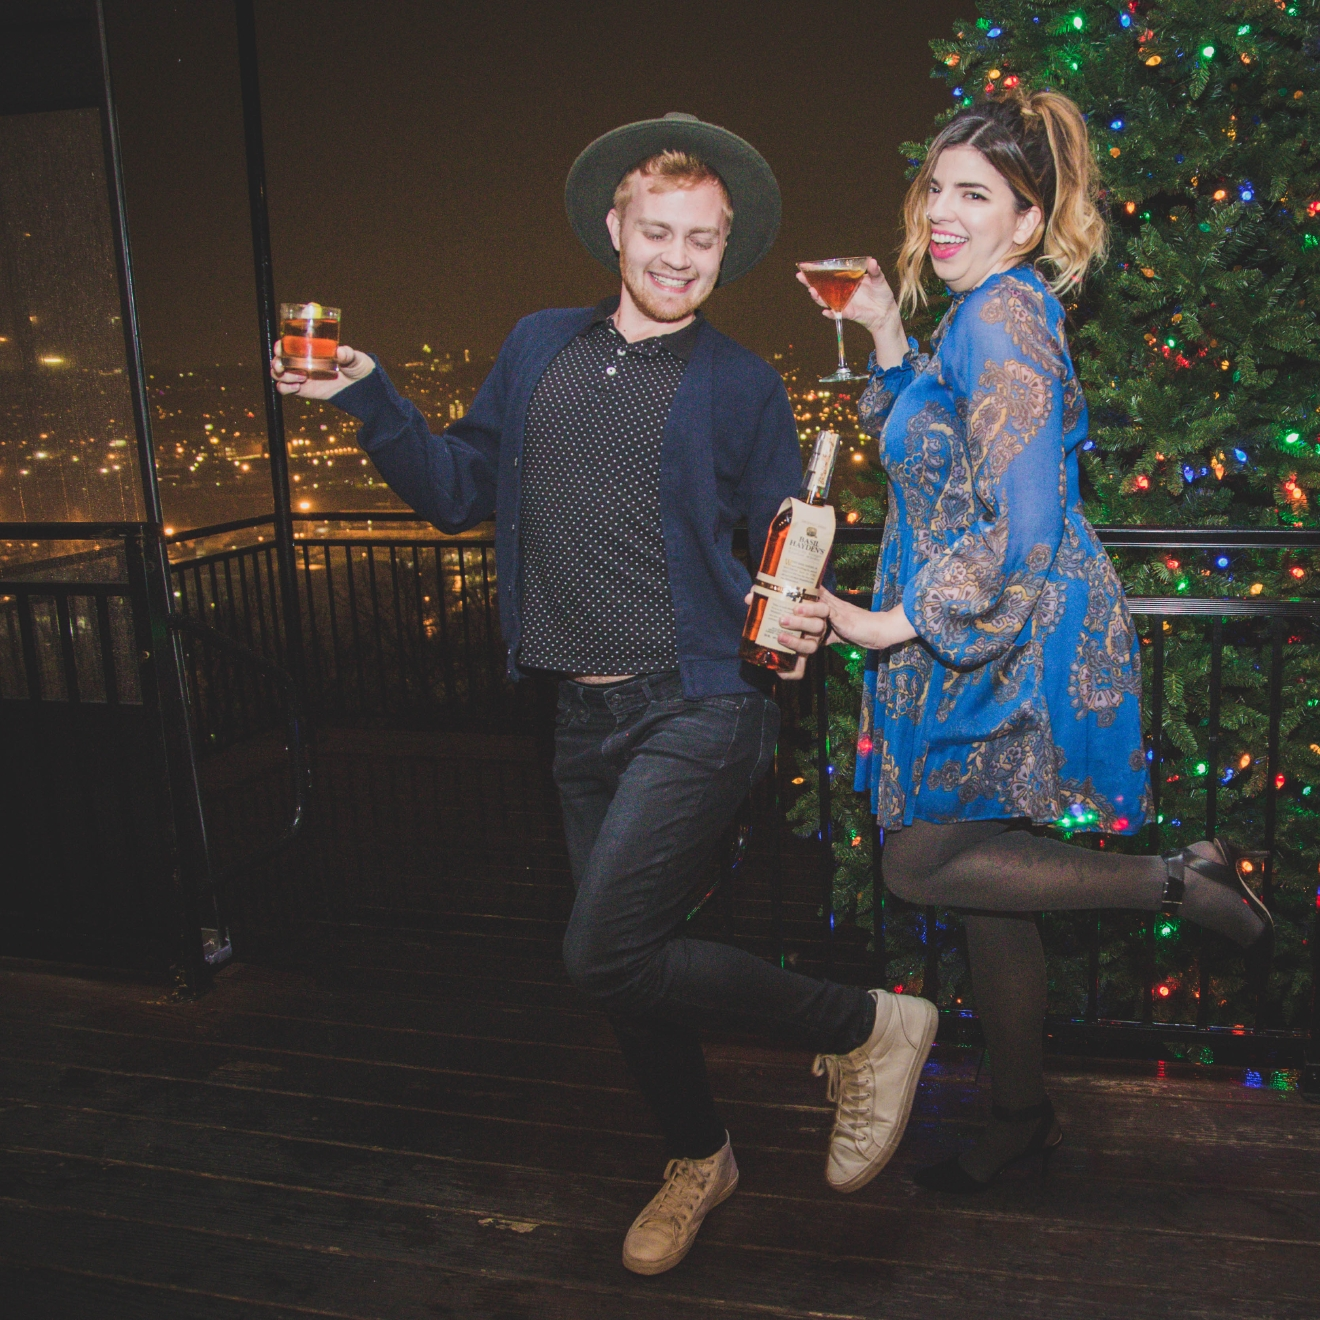 Garrett Douthitt in a hat from Zara, and outfit pieces from Izod, Levis, and Old Navy along with Becca Cowles in a Free People dress with accessories from etsy at Incline Public House. / Image: Catherine Viox // Published: 12.23.16